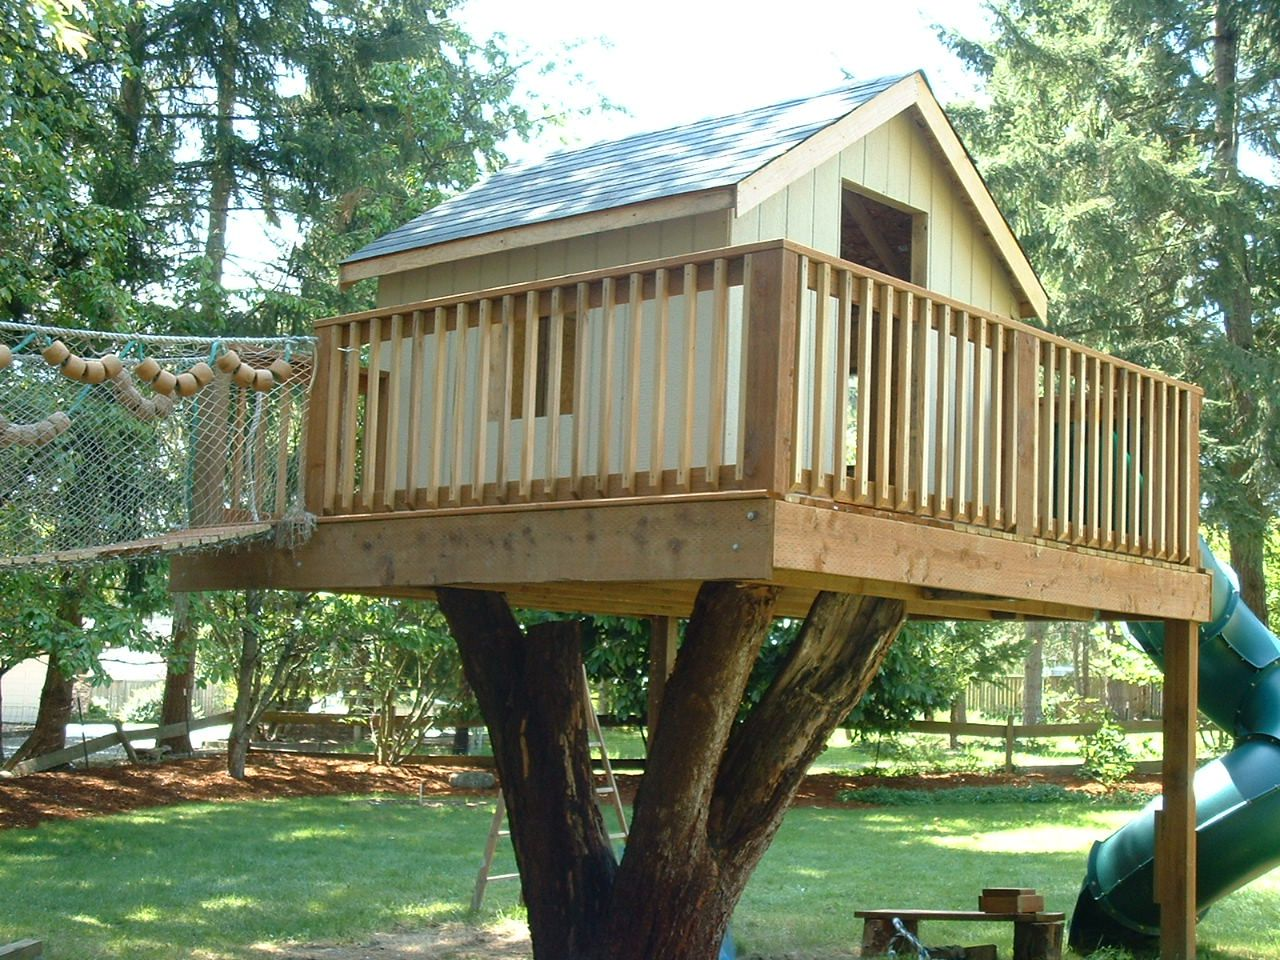 Tree House Ideas Pictures Of Tree Houses And Play Houses From